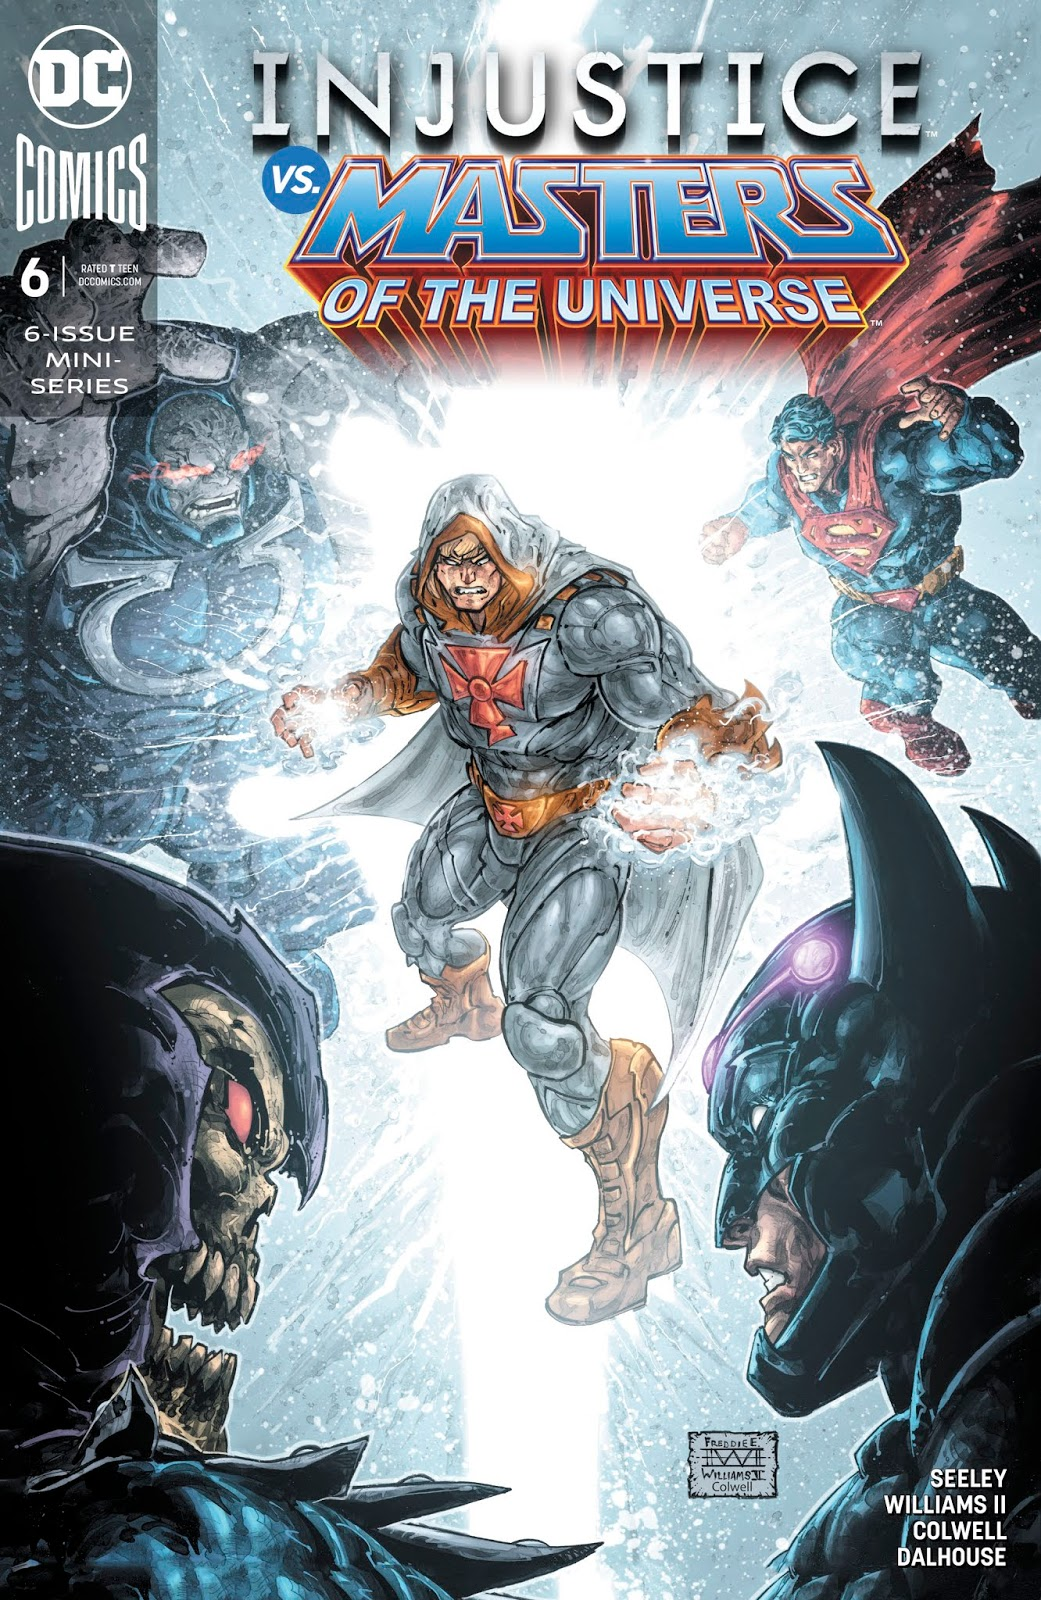 Injustice vs  Masters of the Universe Issue 6 | Injustice